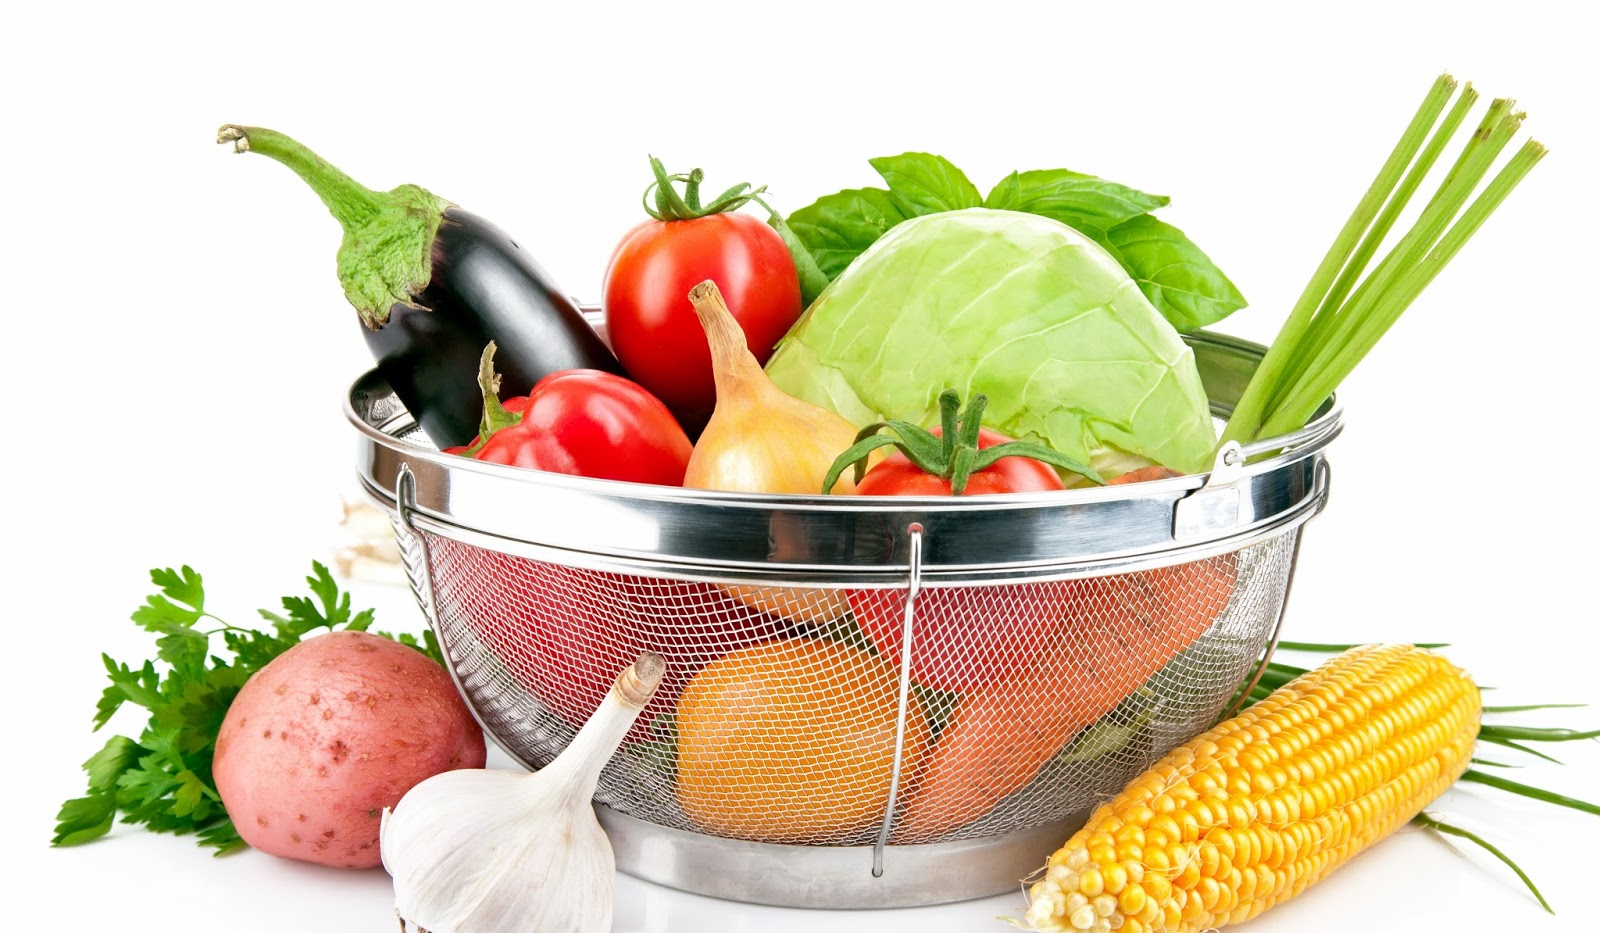 Gud Morning Wallpaper With Cute Baby Vegetables Basket Food Hd Wallpapers Latest Images Free